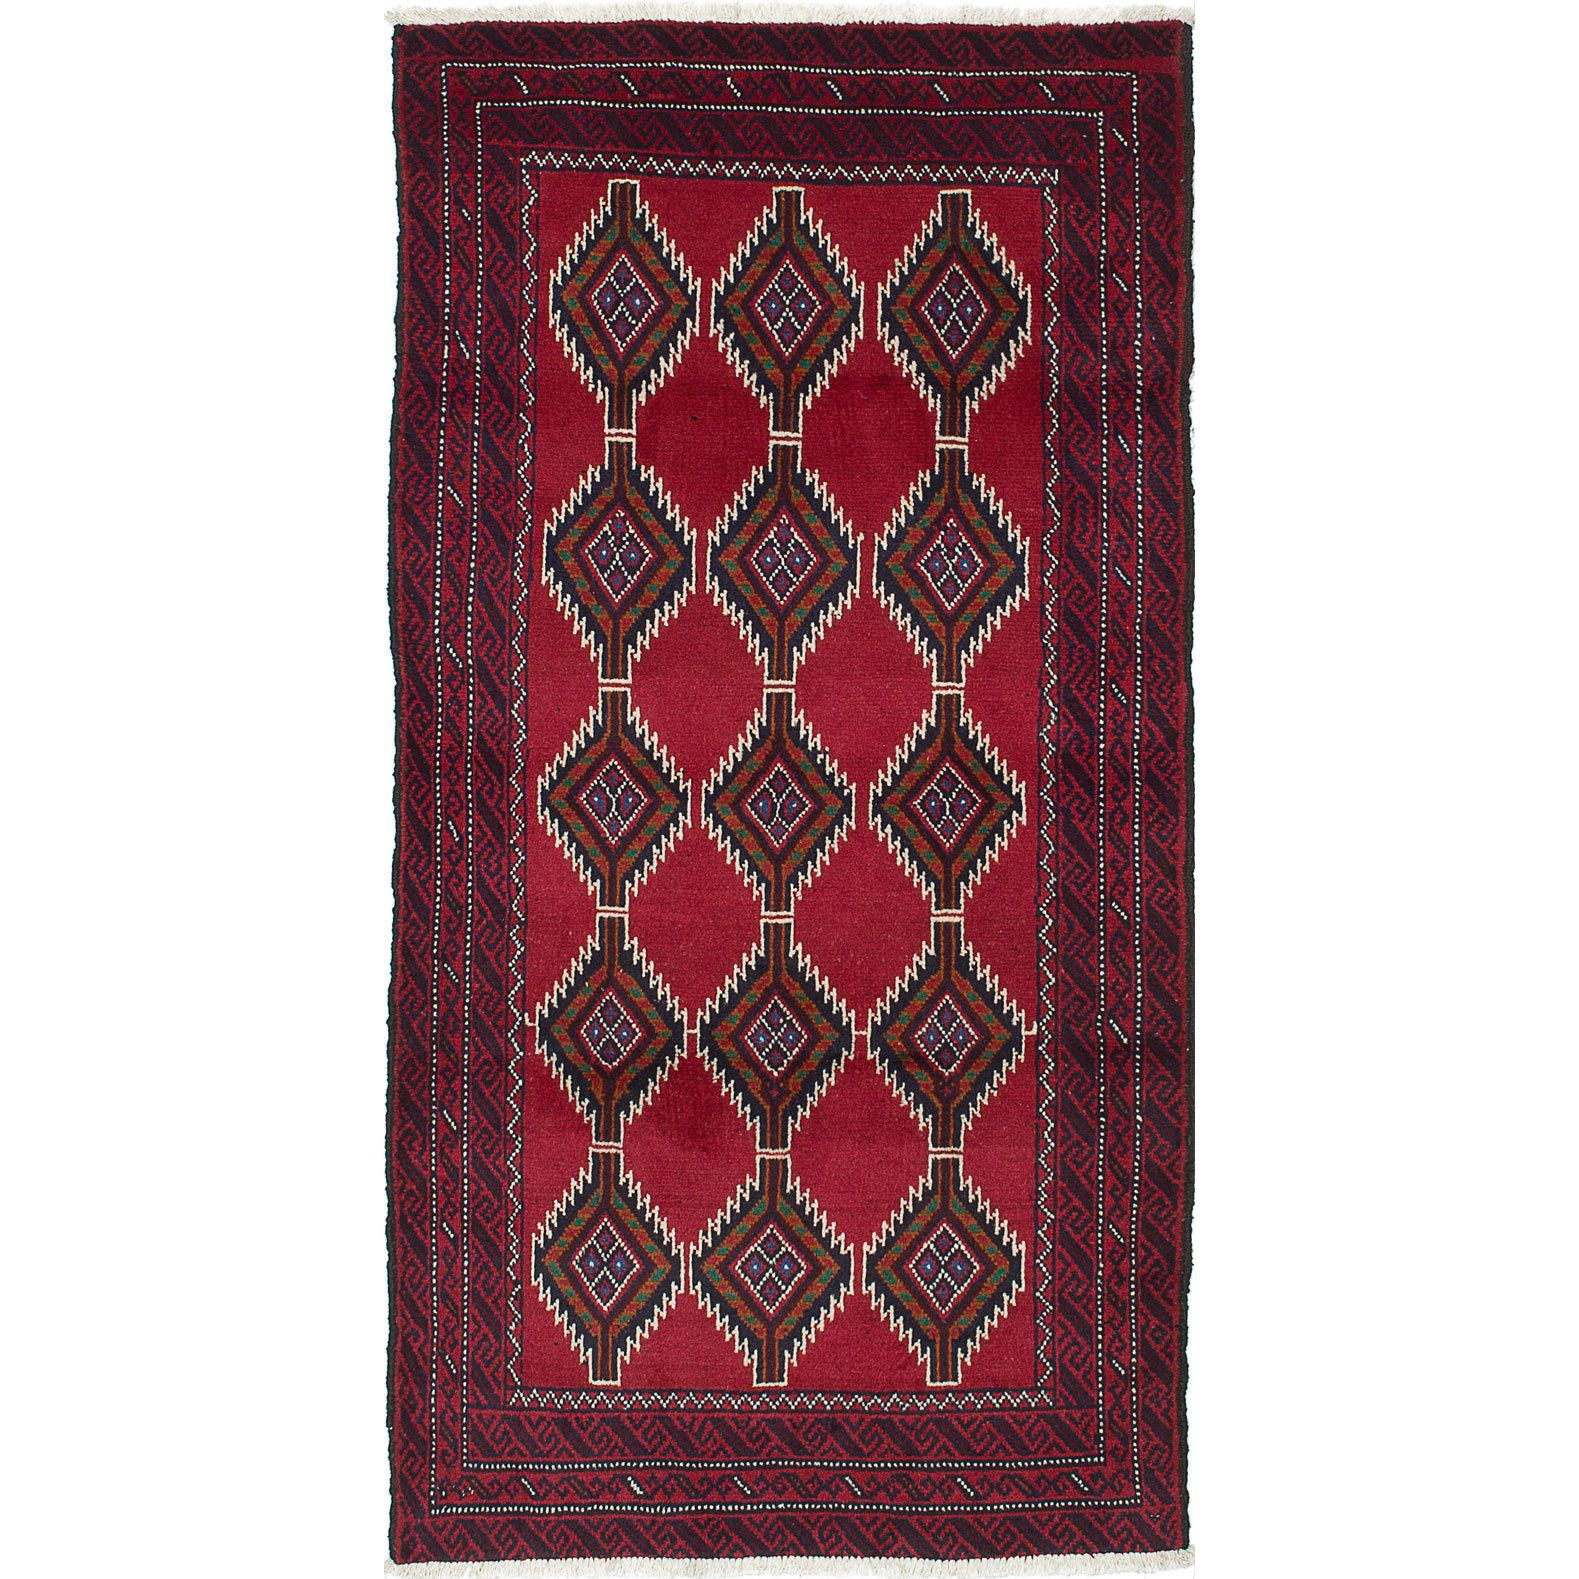 Ecarpetgallery Hand-Knotted Persian Finest Baluch Red Wool Rug